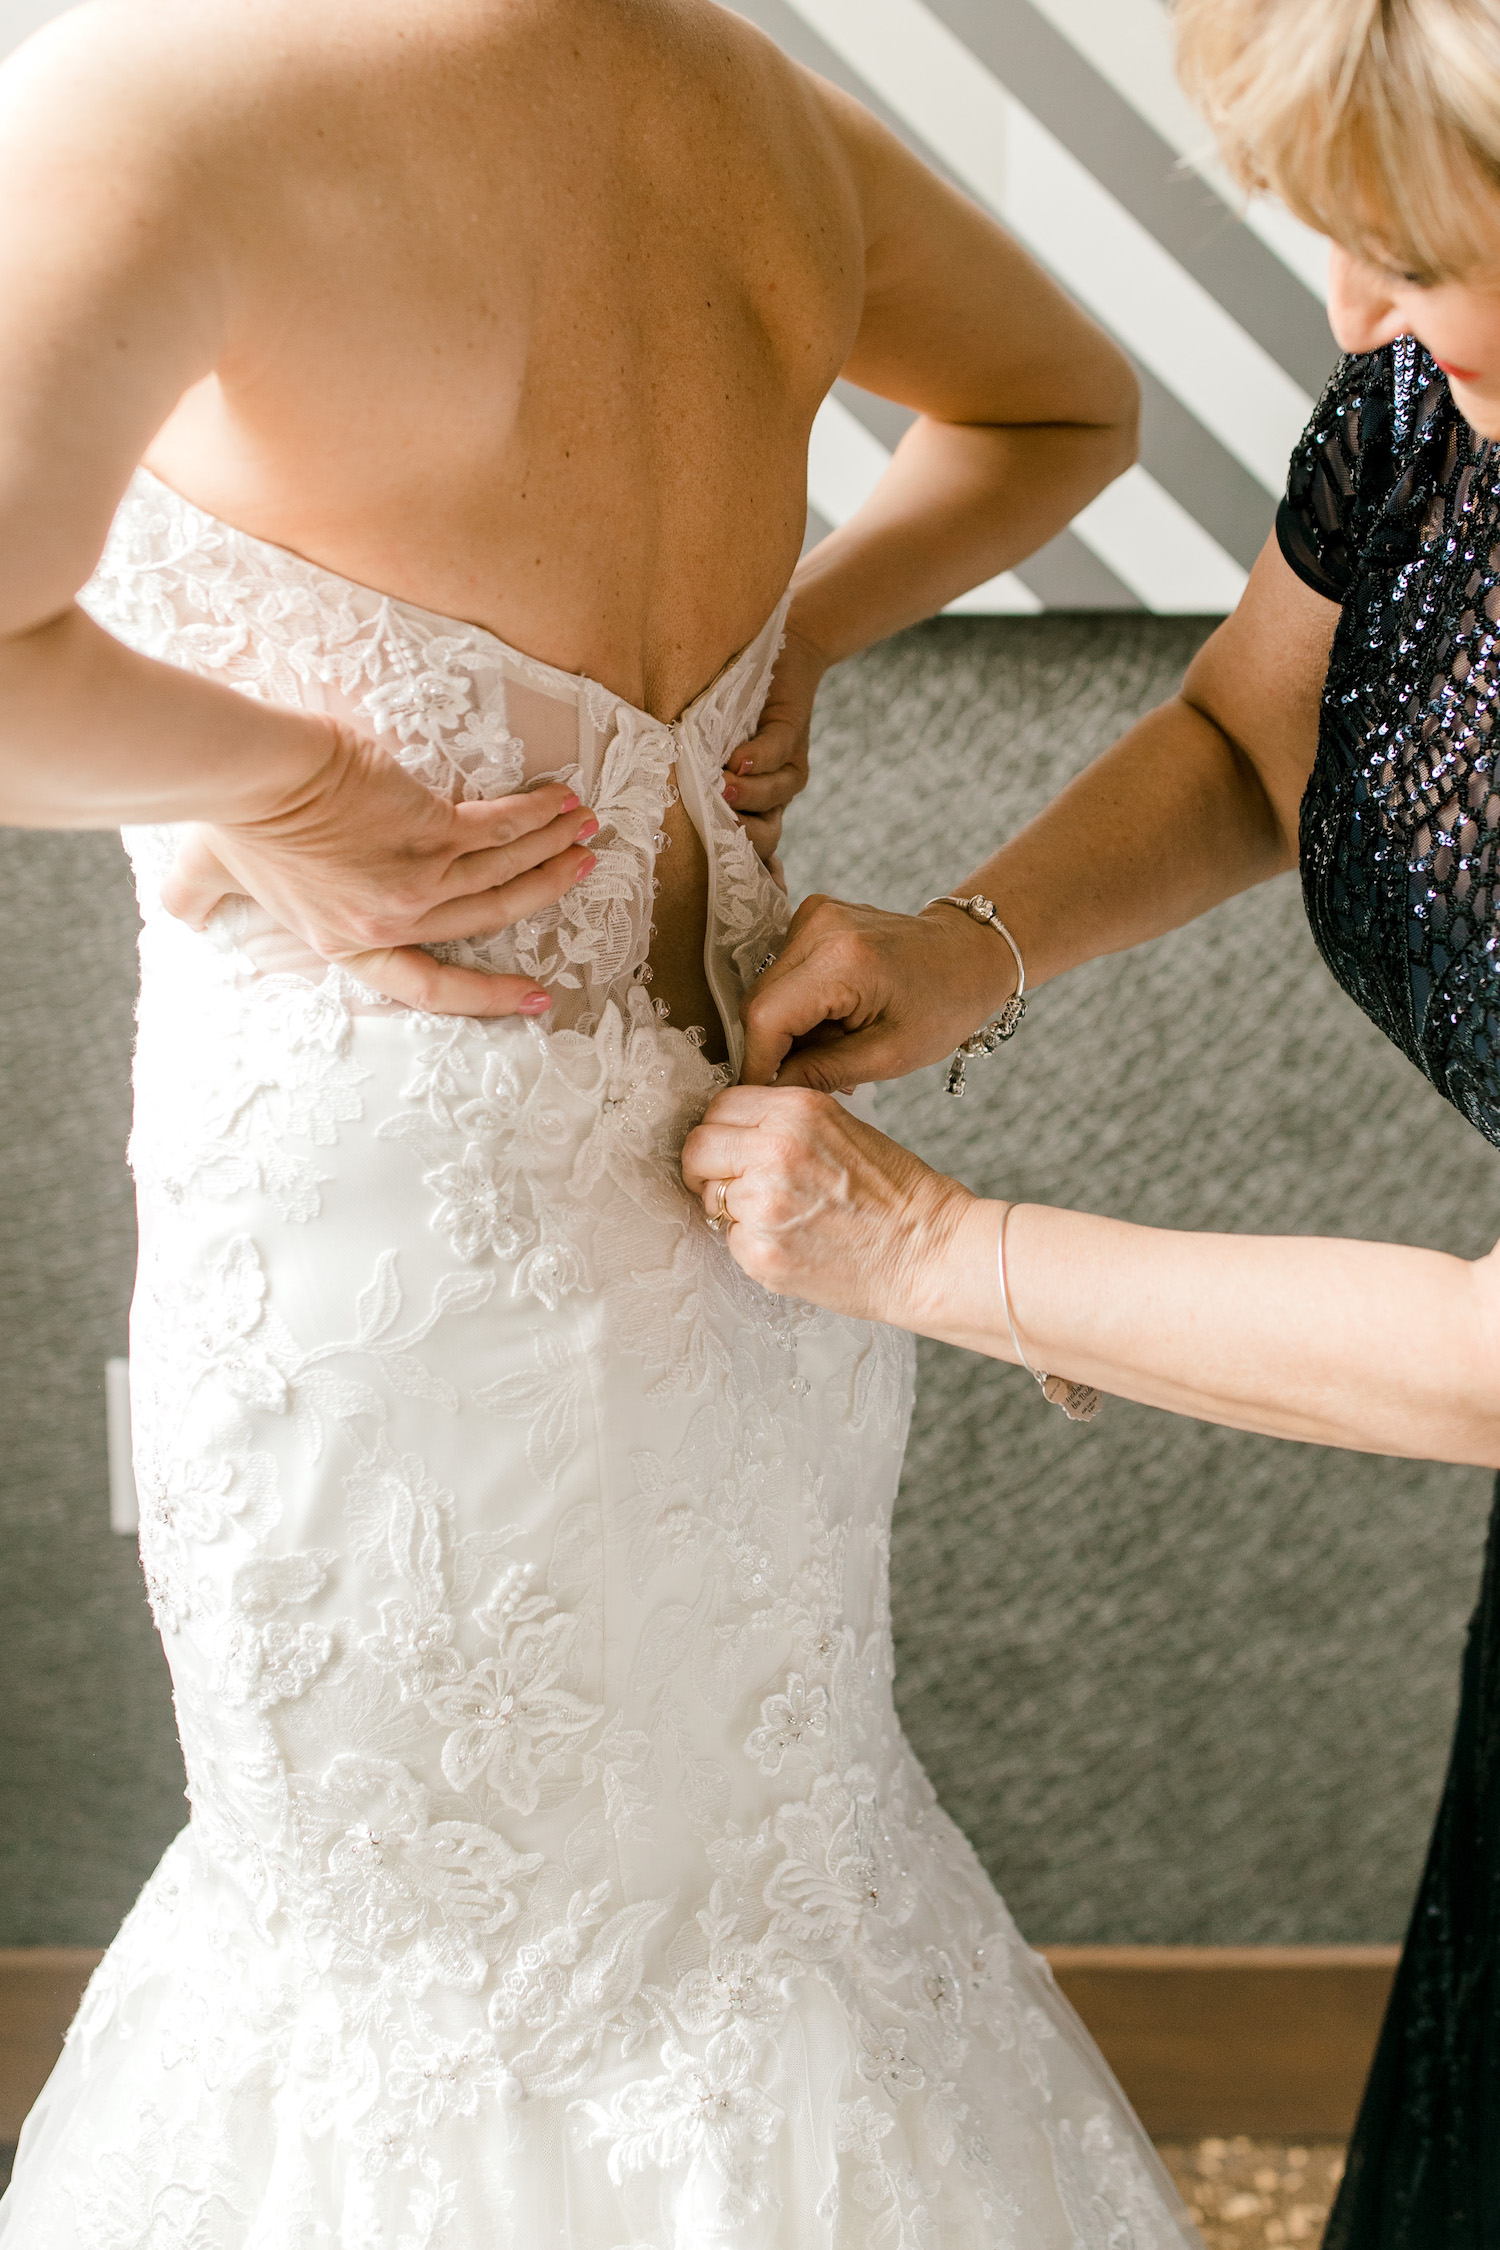 Brides dress being buttoned for her City Flats Hotel wedding